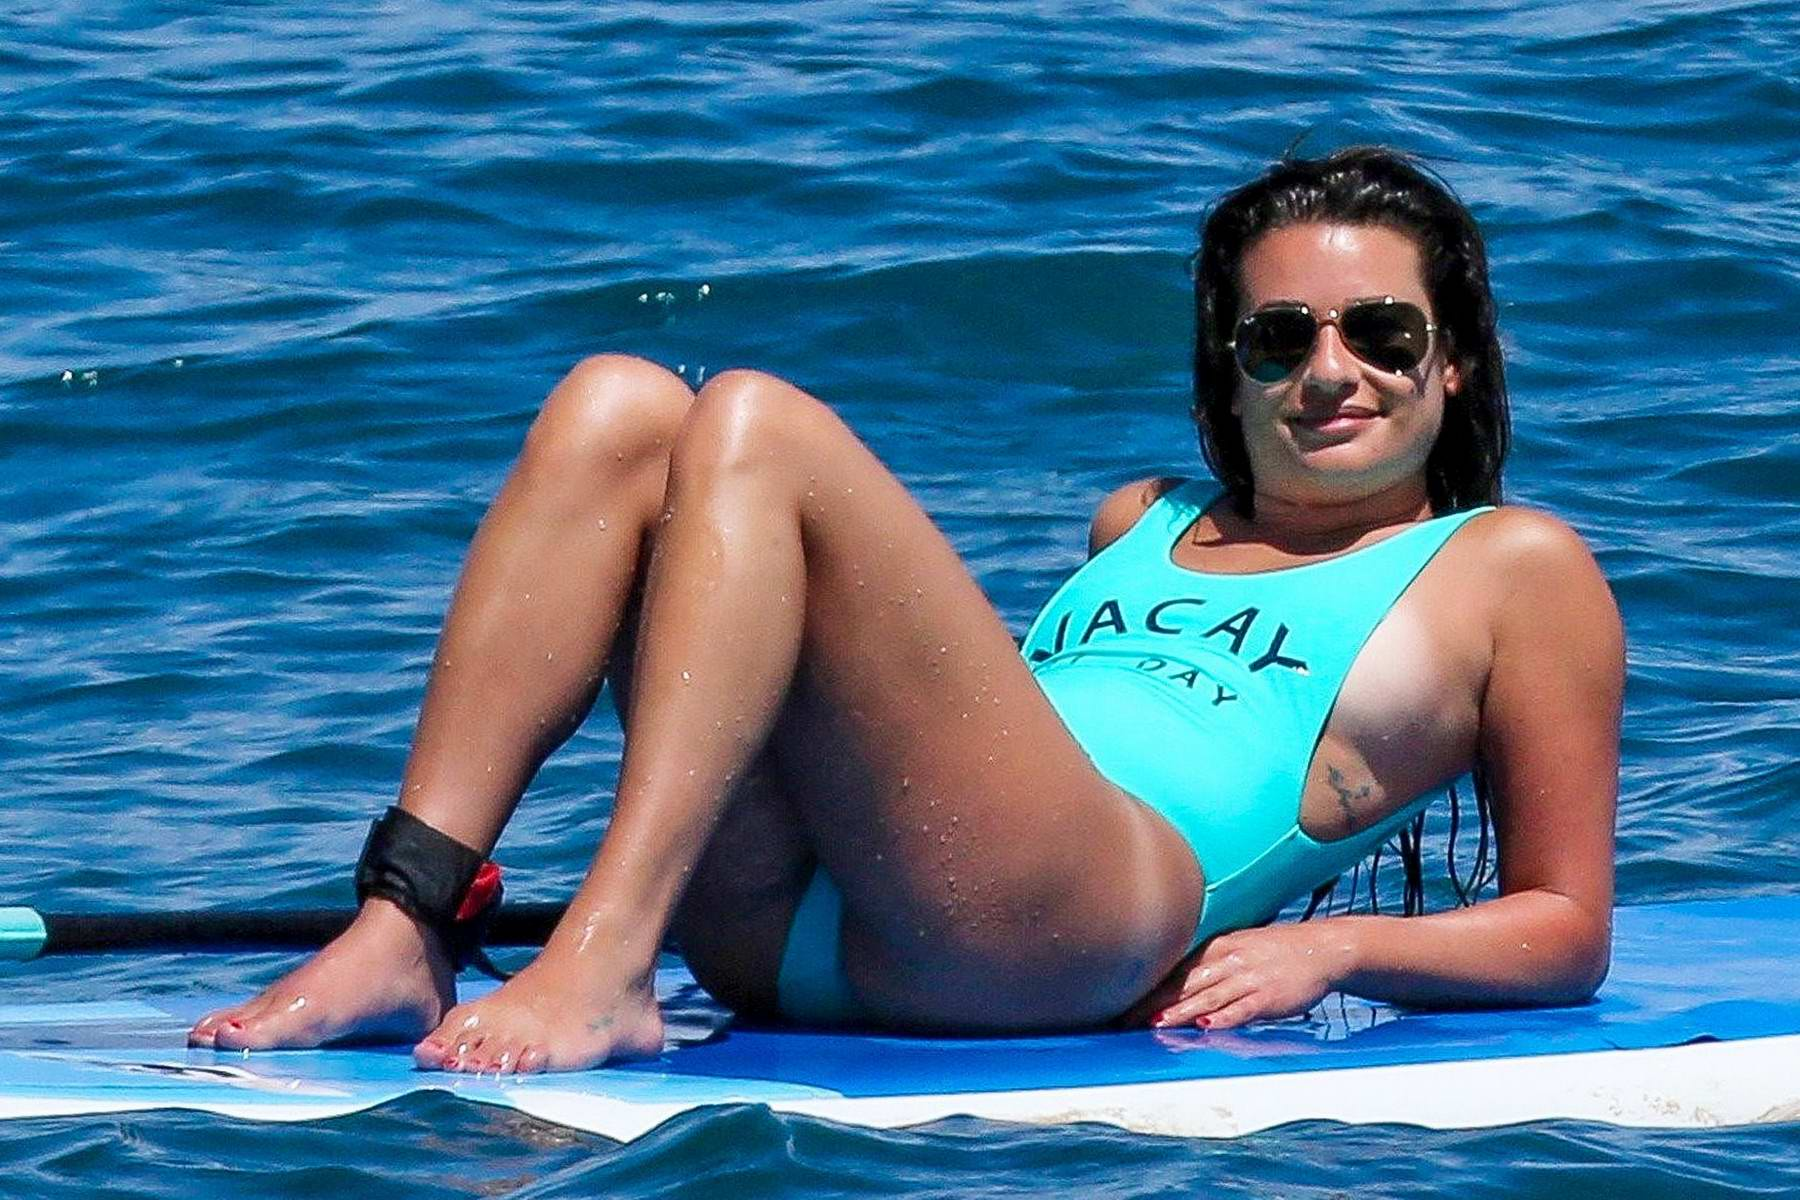 lea-michele-in-a-blue-swimsuit-shows-off-her-yoga-skills-on-a-paddle-board-in-maui-hawaii-300617_3.jpg